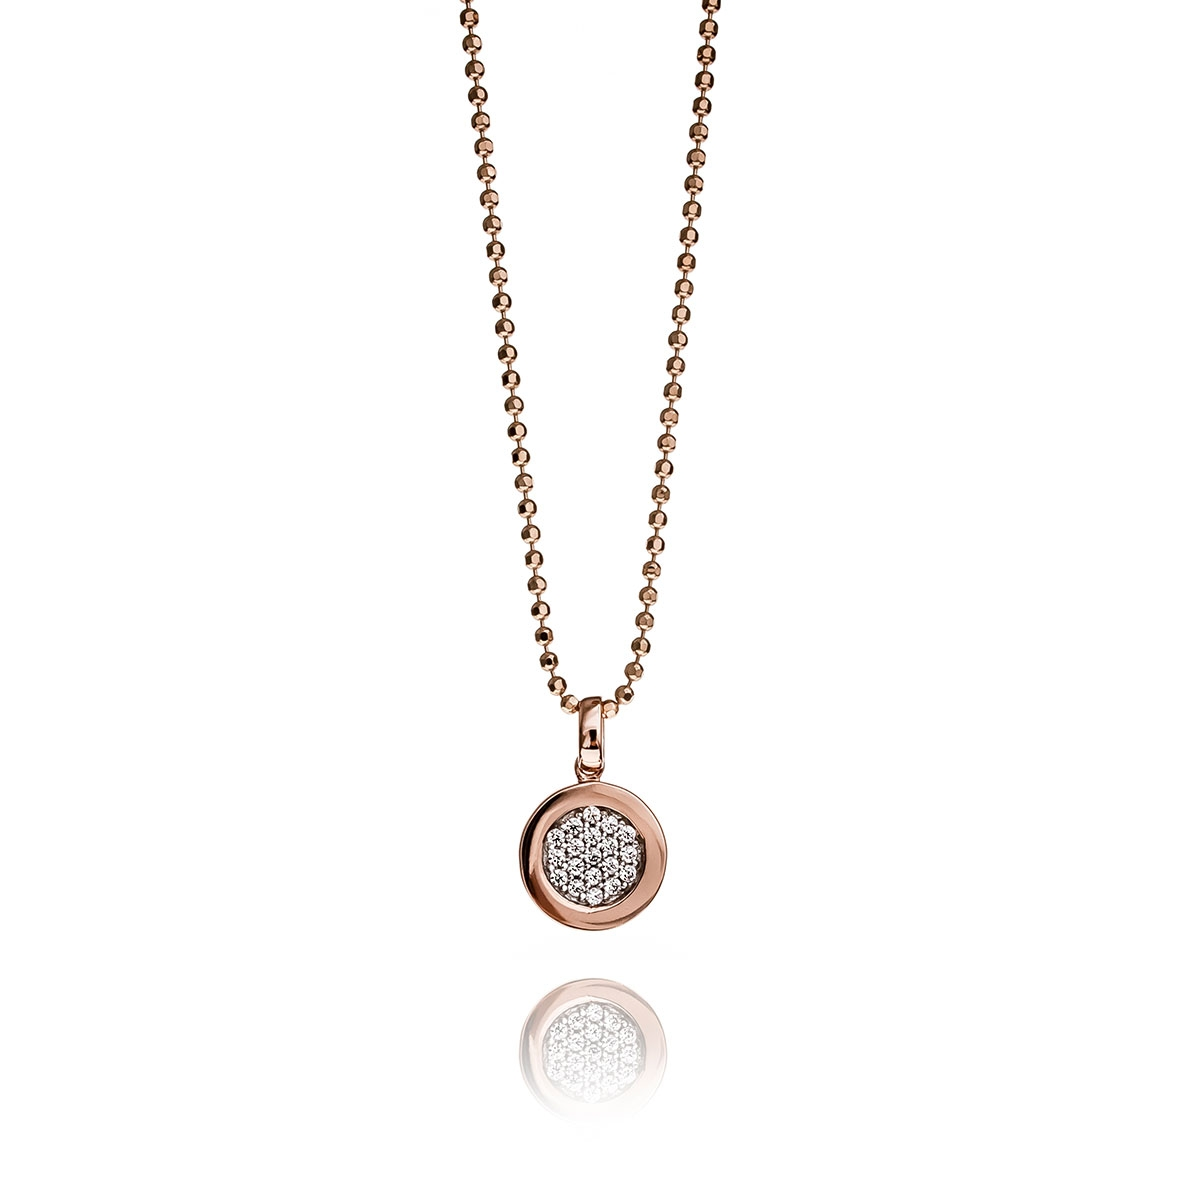 ZINZI ROSE GOLD AND SILVER CIRCLE PENDANT NECKLACE SET Jewel First